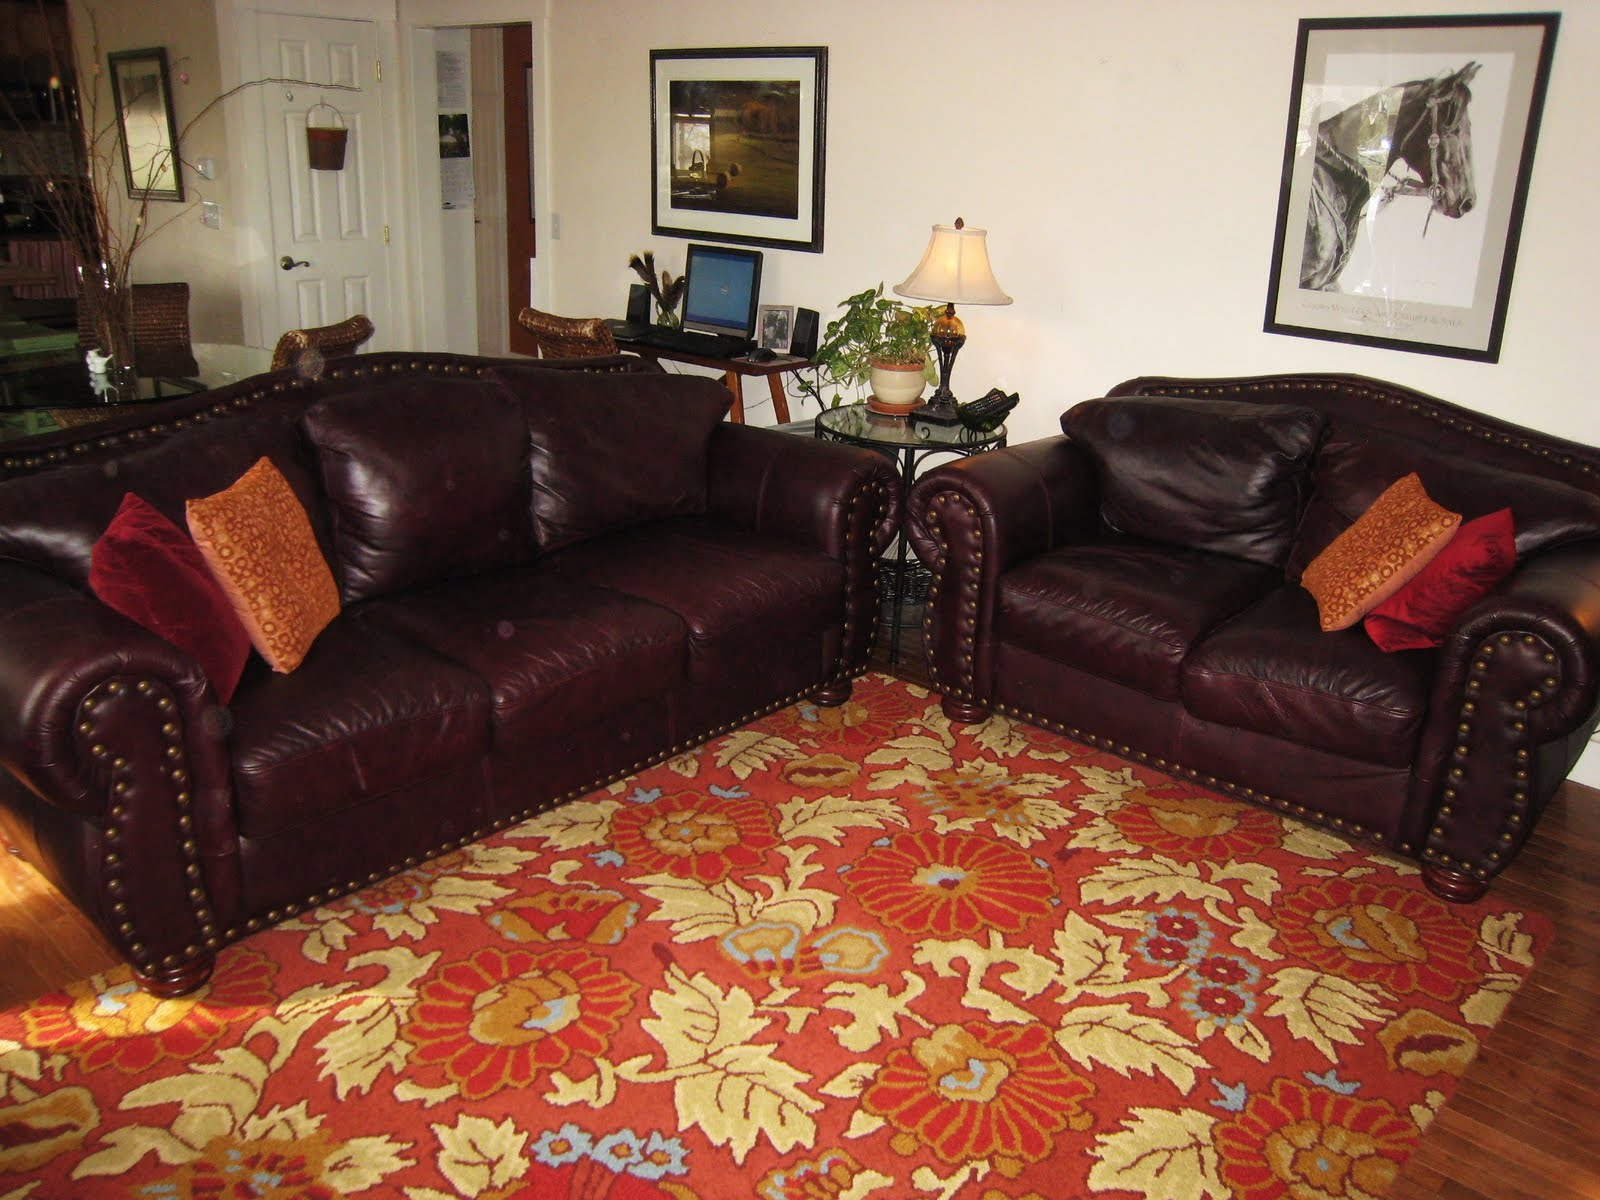 Craigslist Living Room Furniture Home Design Ideas and Pictures